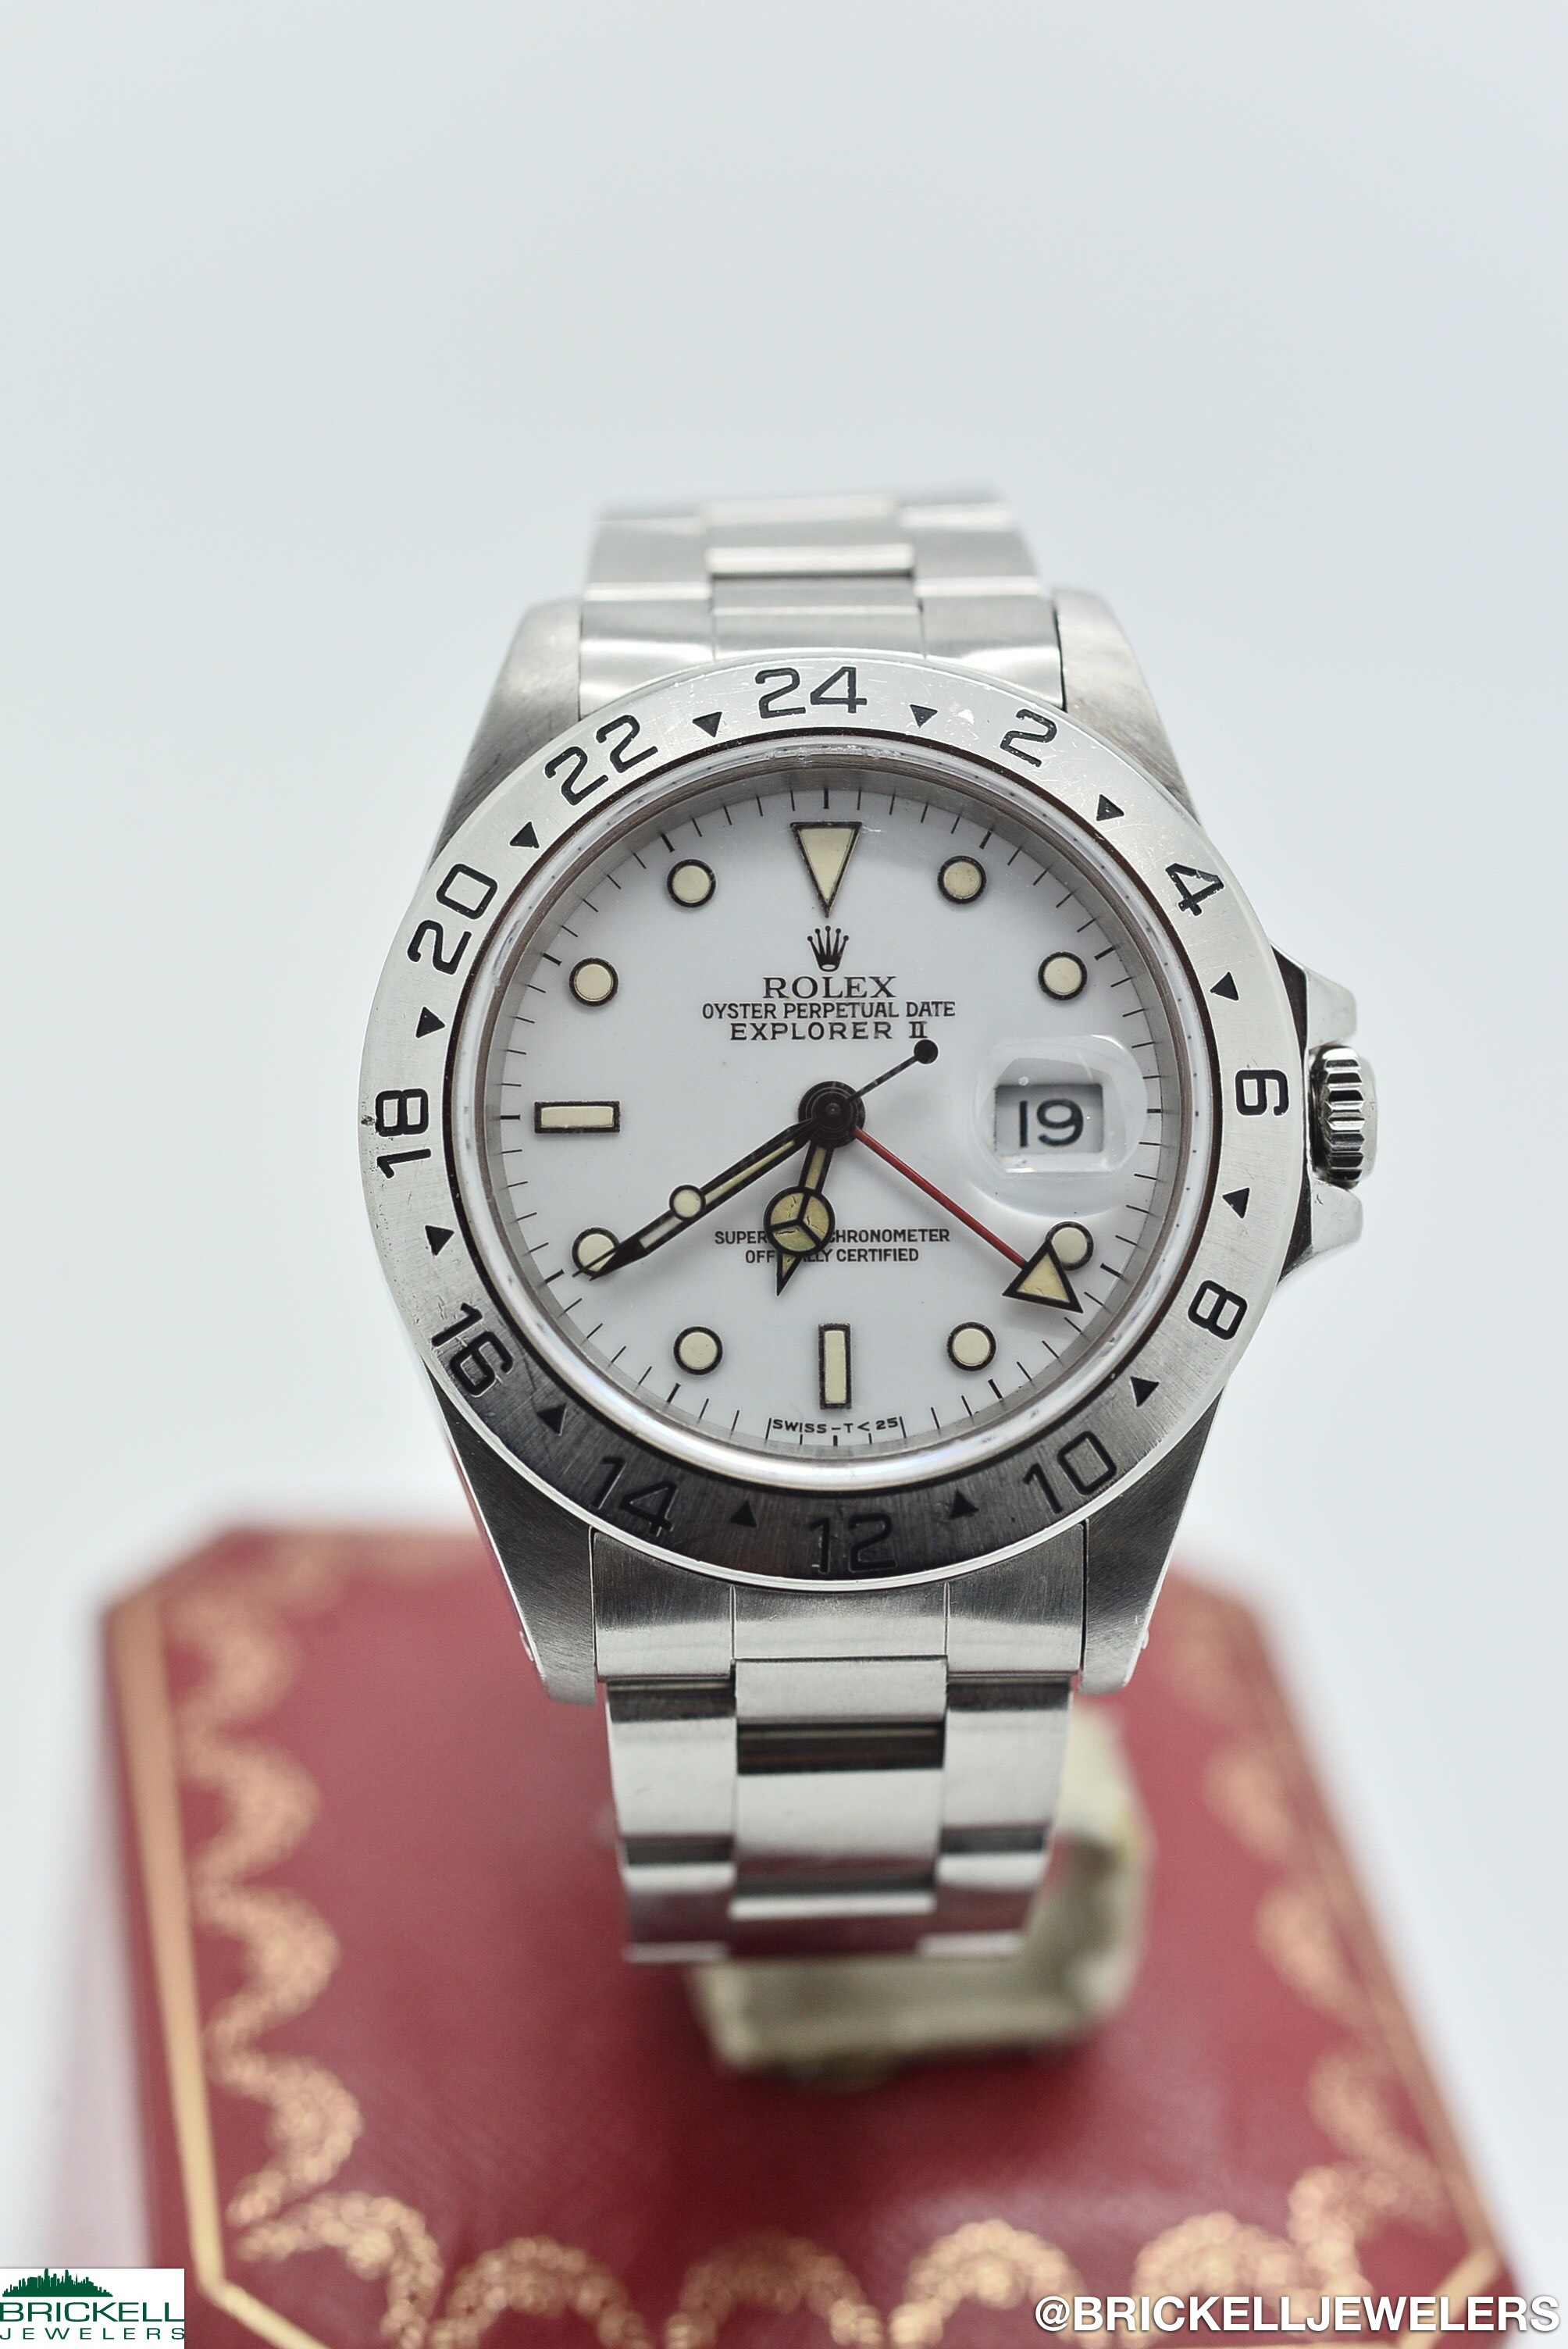 ROLEX	EXPLORER	16570	WHITE					Stainless Steel			Mechanical (Automatic)	WATCH